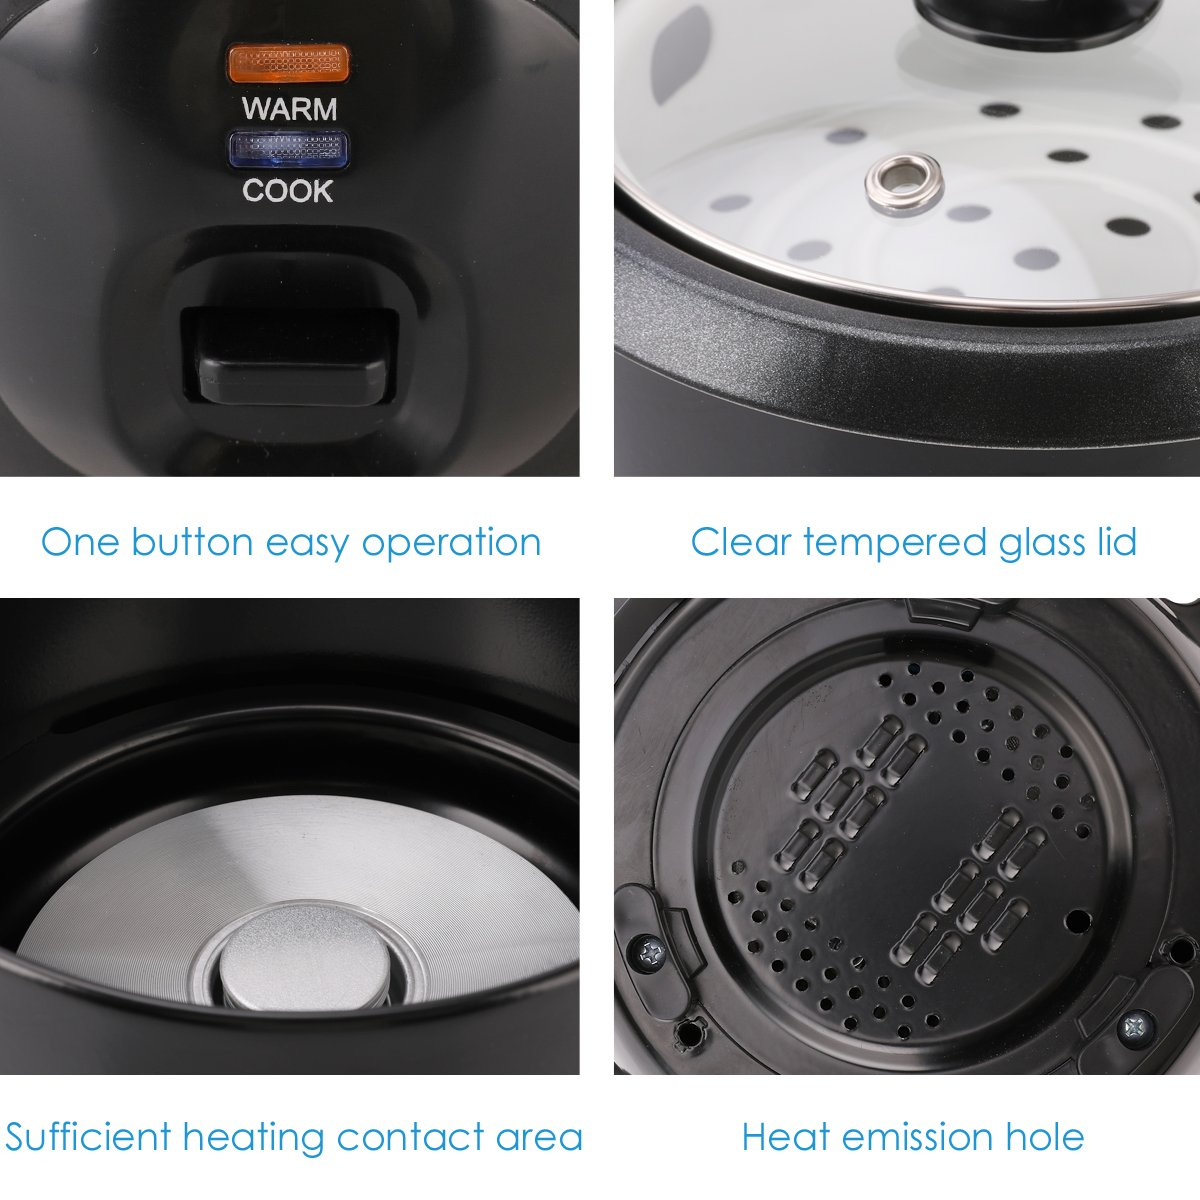 Midea 3-Cup (Cooked),1.5 Cup (Uncooked) Small Rice Cooker with Food Steamer (MRC173-B), Black by MIDEA (Image #5)